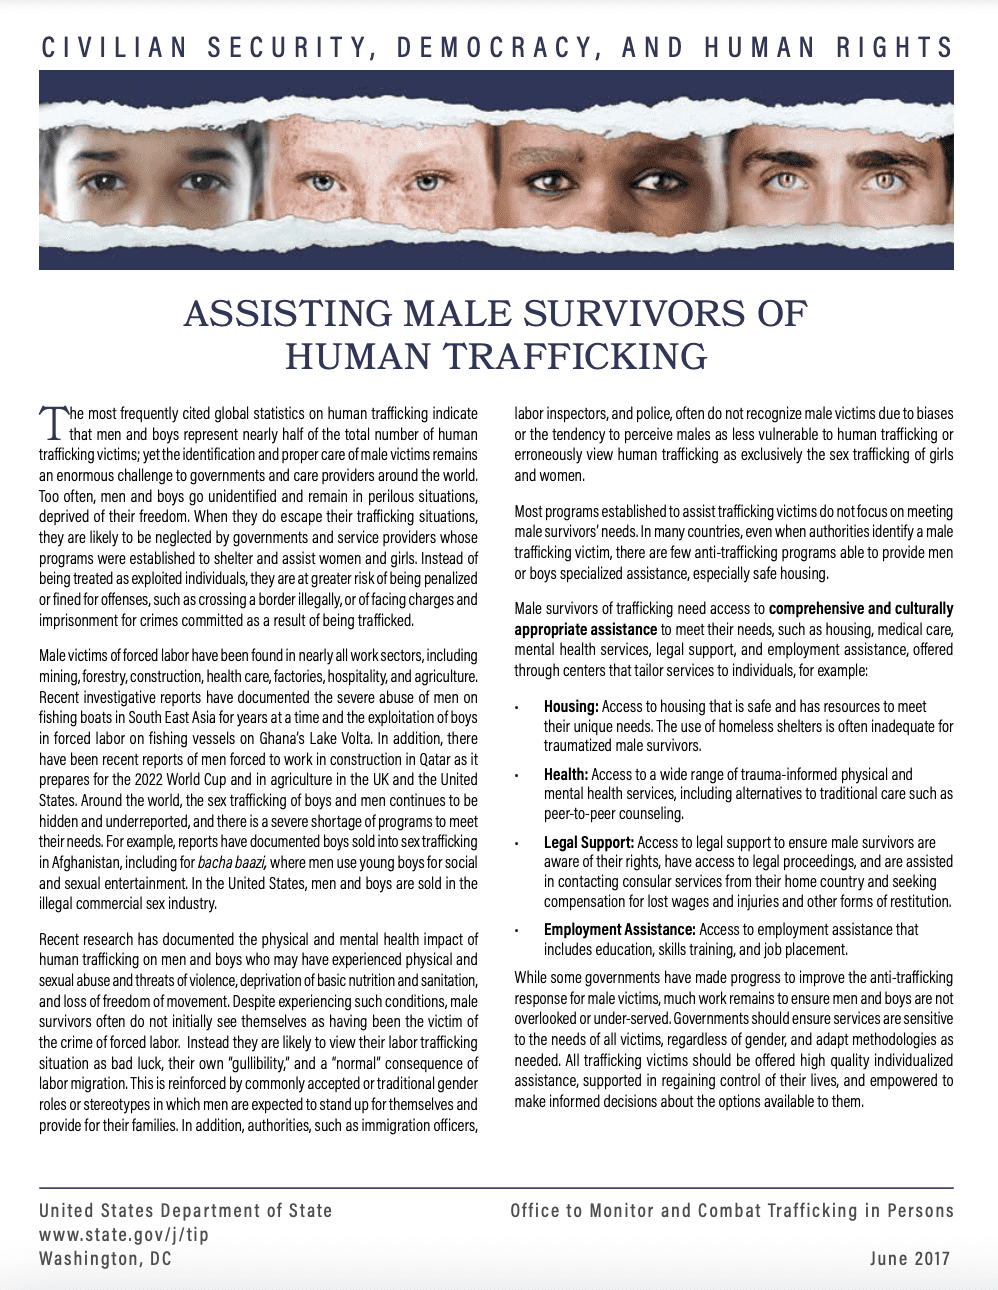 Assisting Male Survivors of Human Trafficking